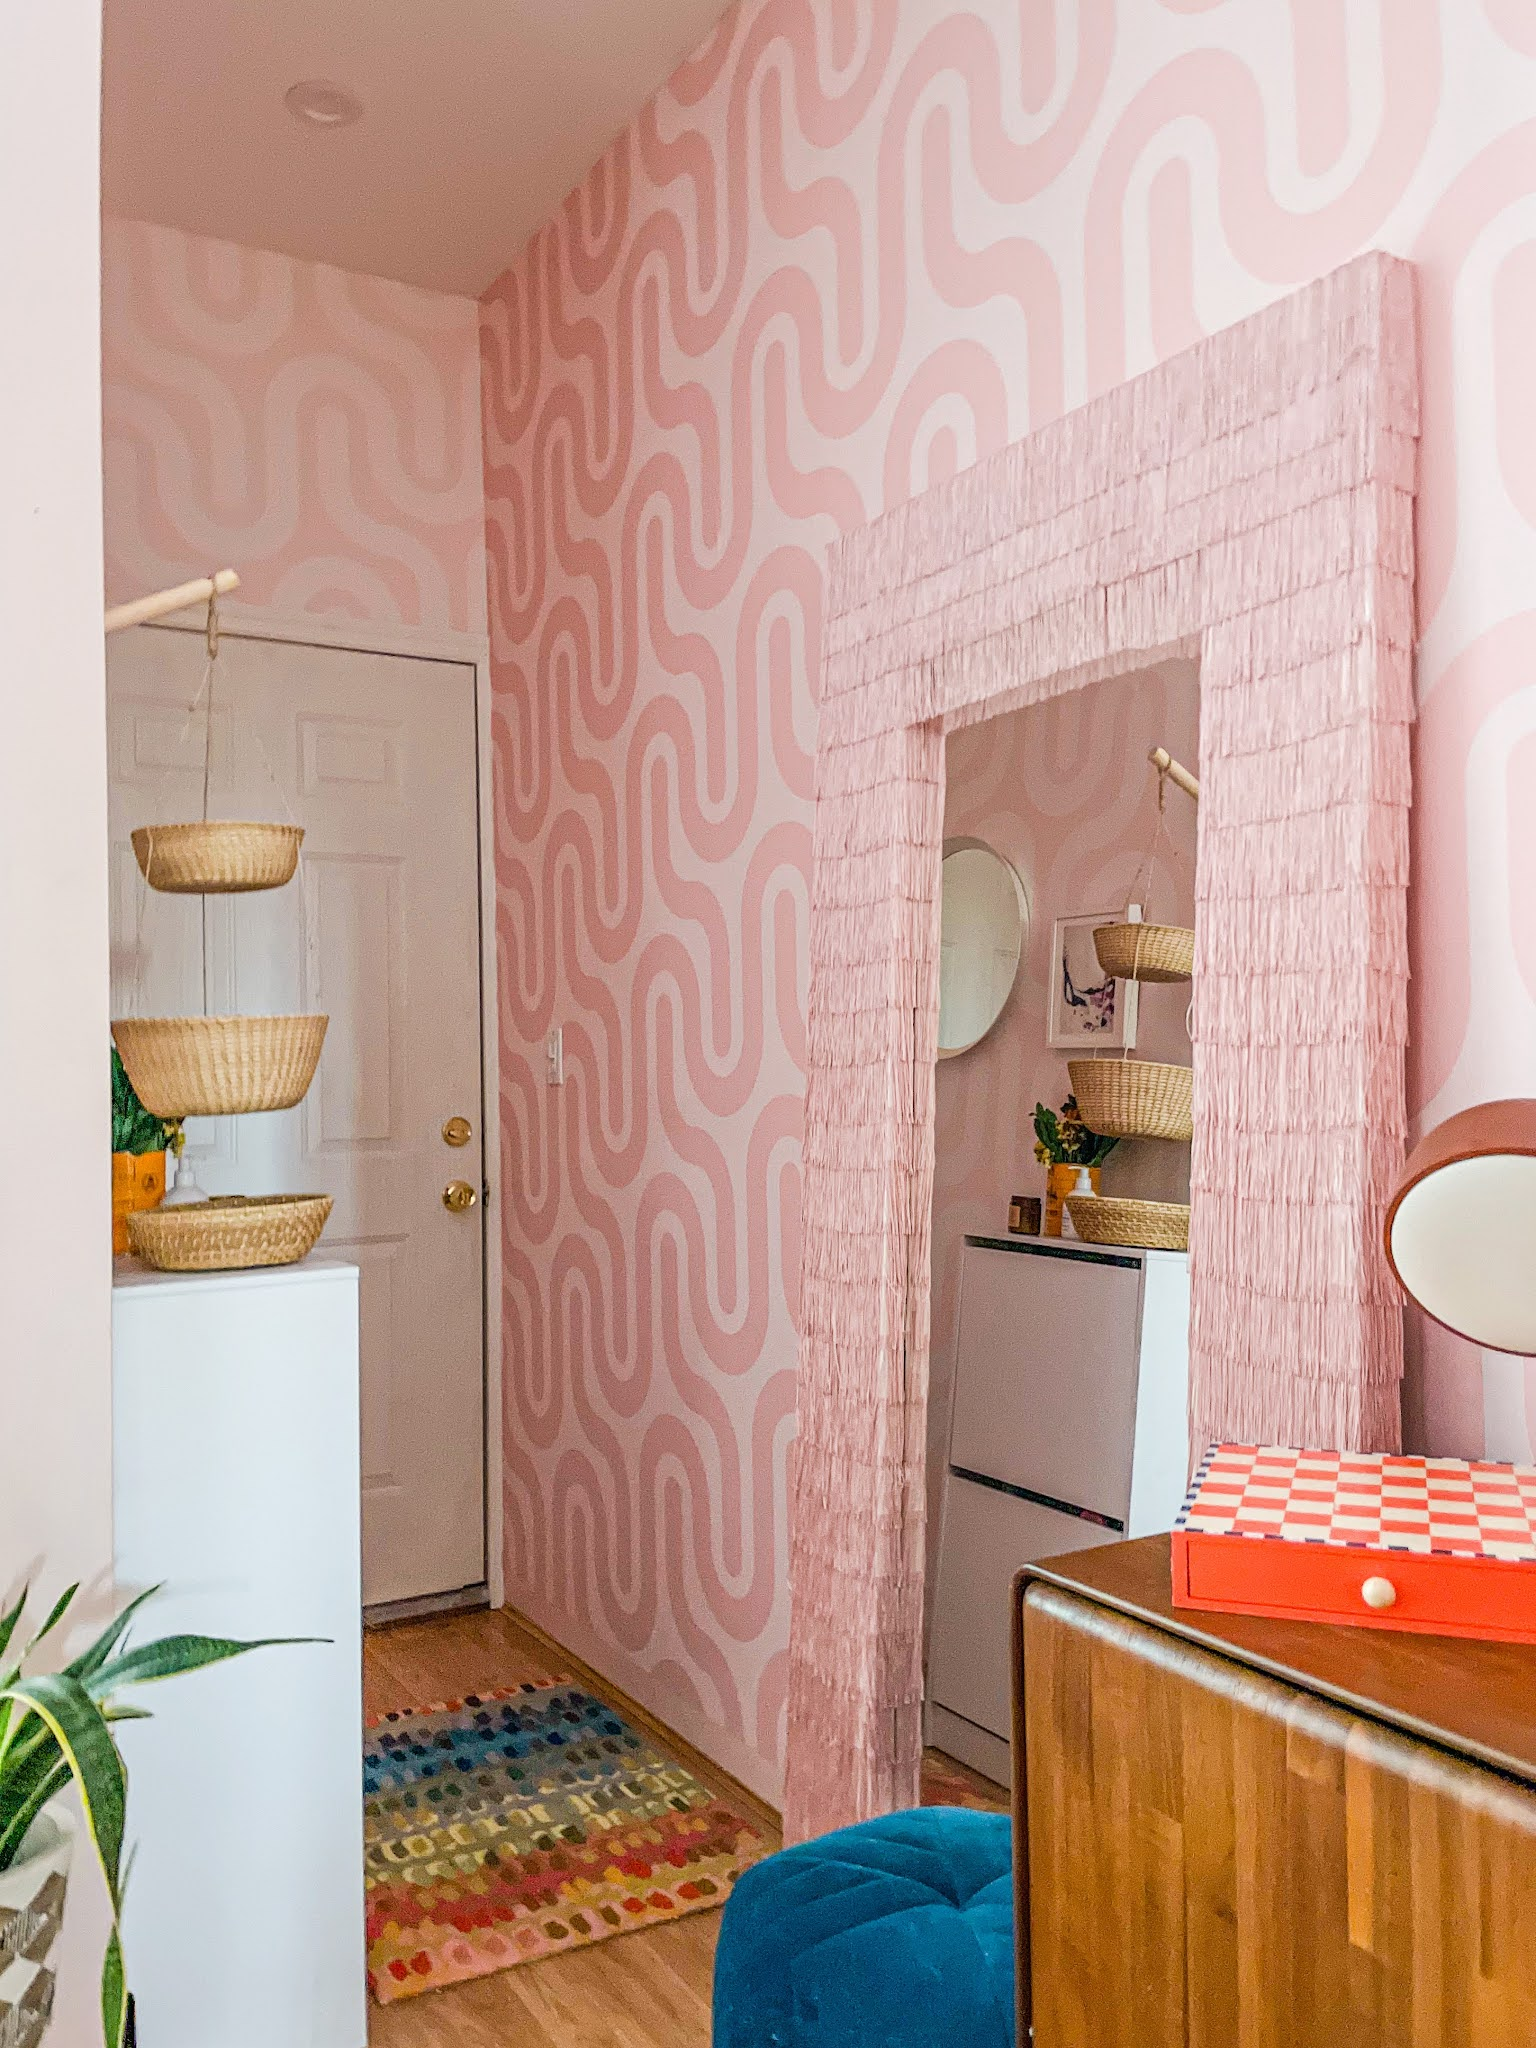 wallpaper ideas // colorful homes // maximalist home decor // pink home decor // retro home decor // retro wallpaper ideas // entryway decor // entryway ideas // small space decor ideas // maximalist homes // small space entryway storage solution